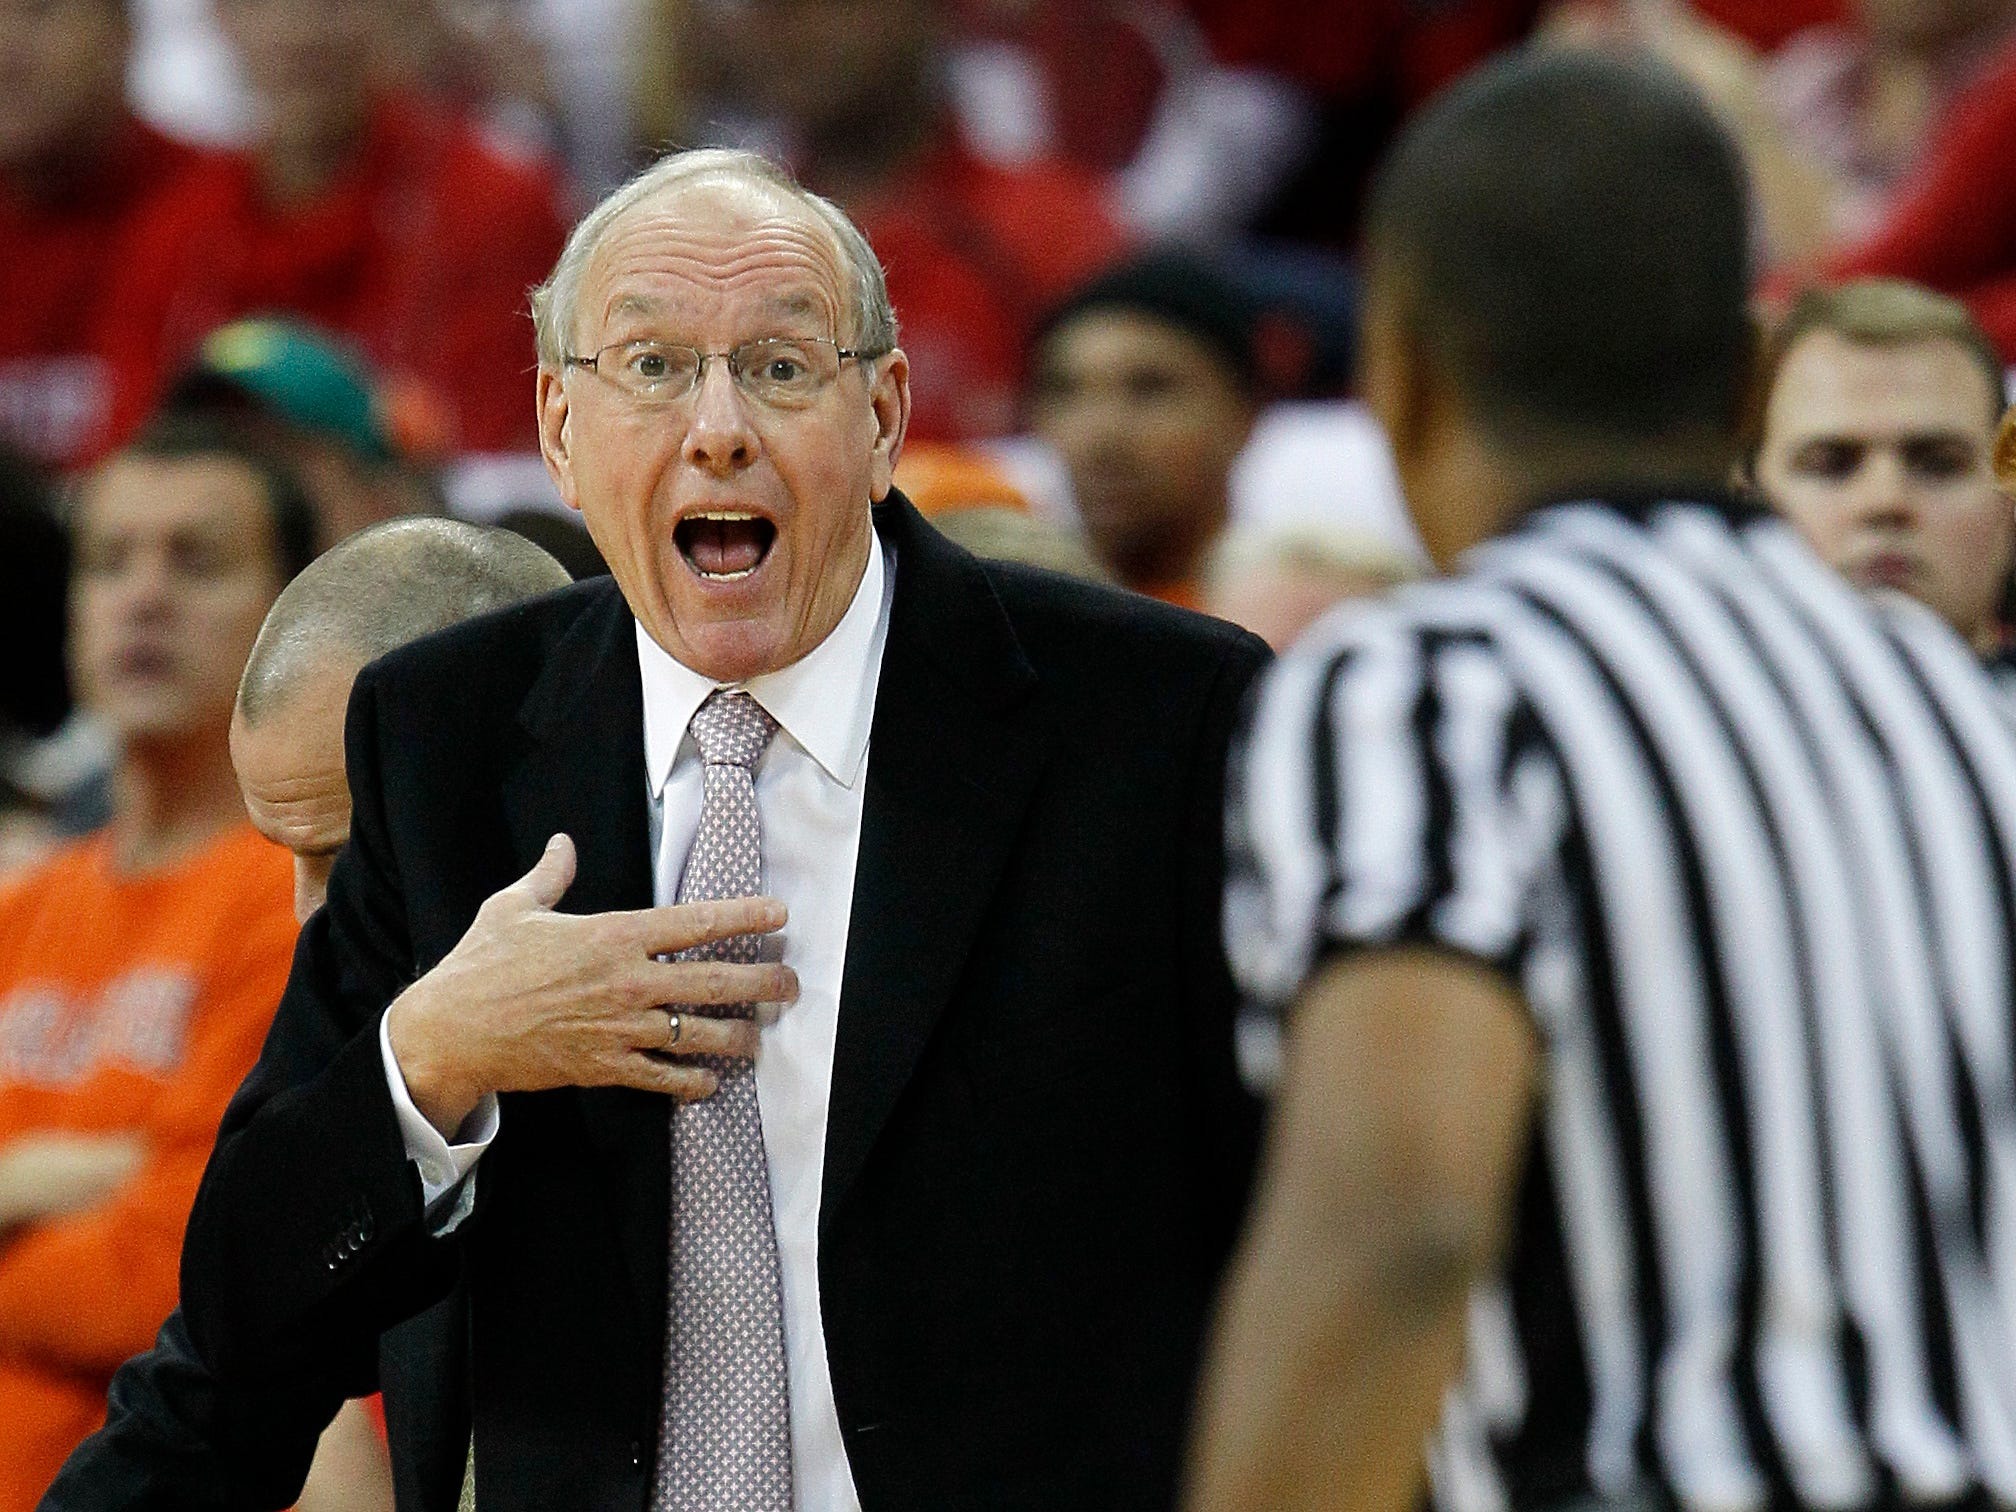 2011: Syracuse coach Jim Boeheim speaks with an official during the first half of an NCAA college basketball game against North Carolina State in Raleigh, N.C., Saturday, Dec. 17, 2011. Syracuse won 88-72. (AP Photo/Gerry Broome)